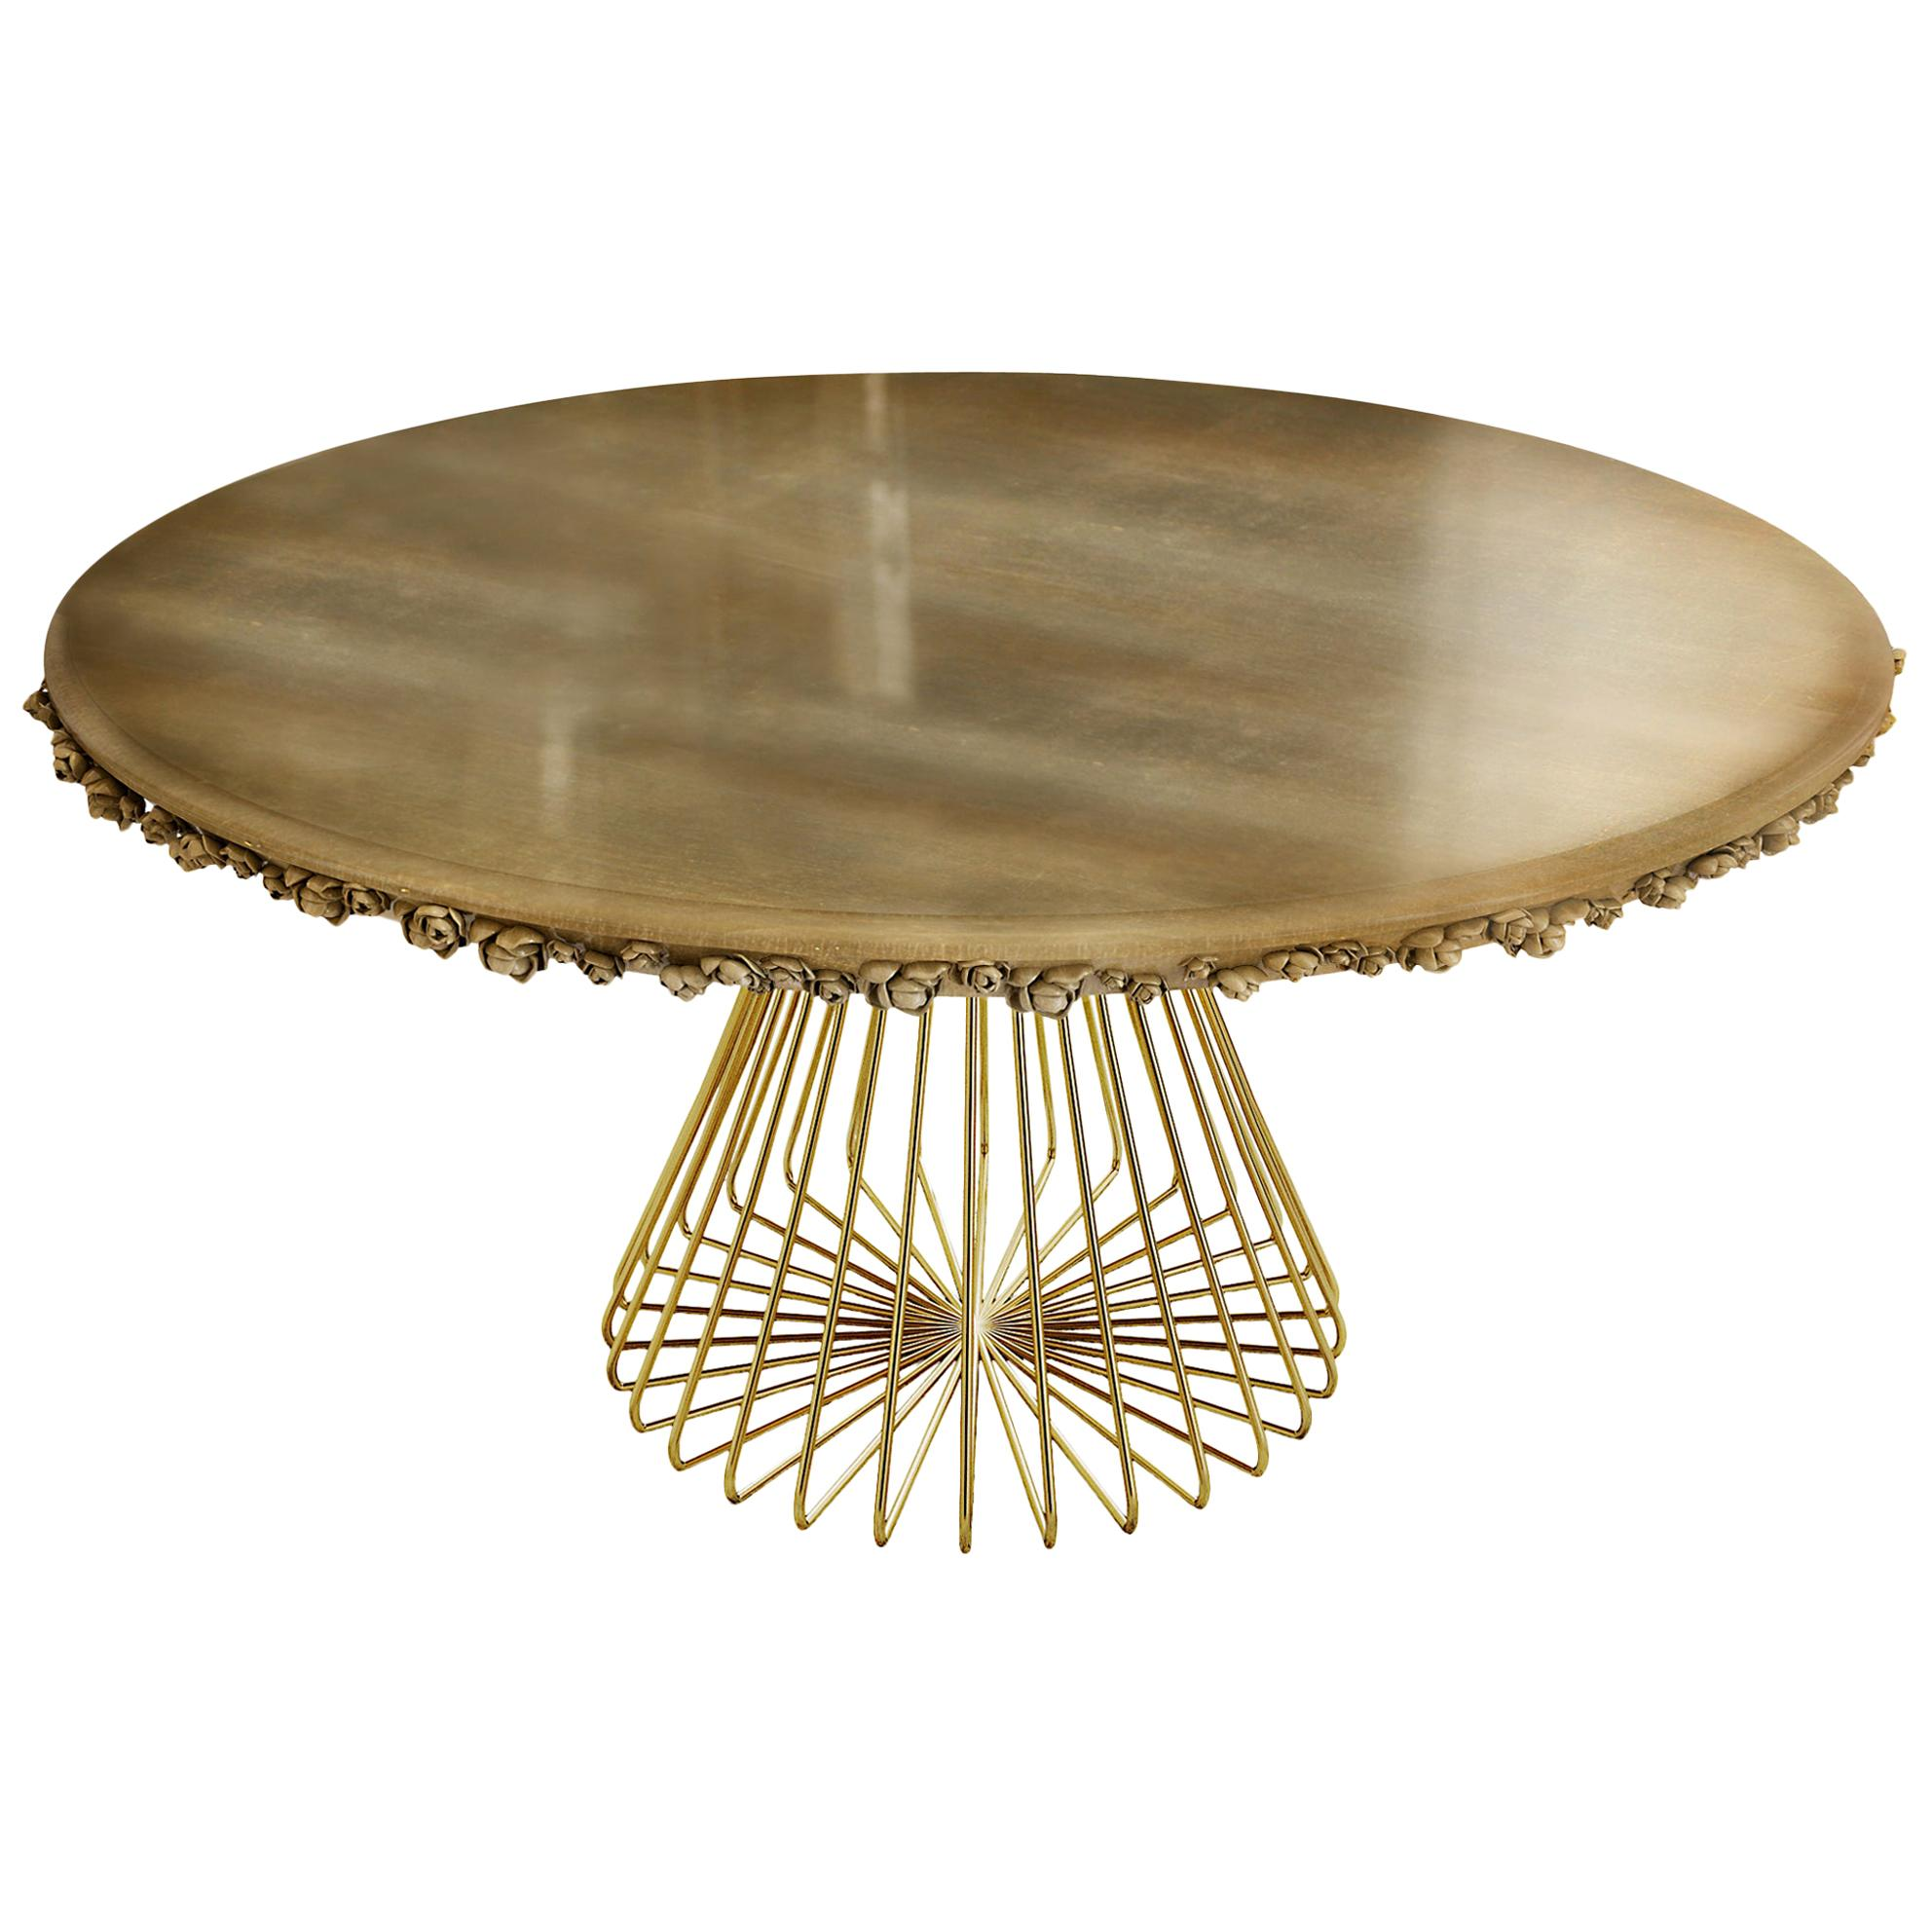 21st Century Pilar Dining Table Hand-Sculpted Edge Gold Plated Brass Silver Leaf